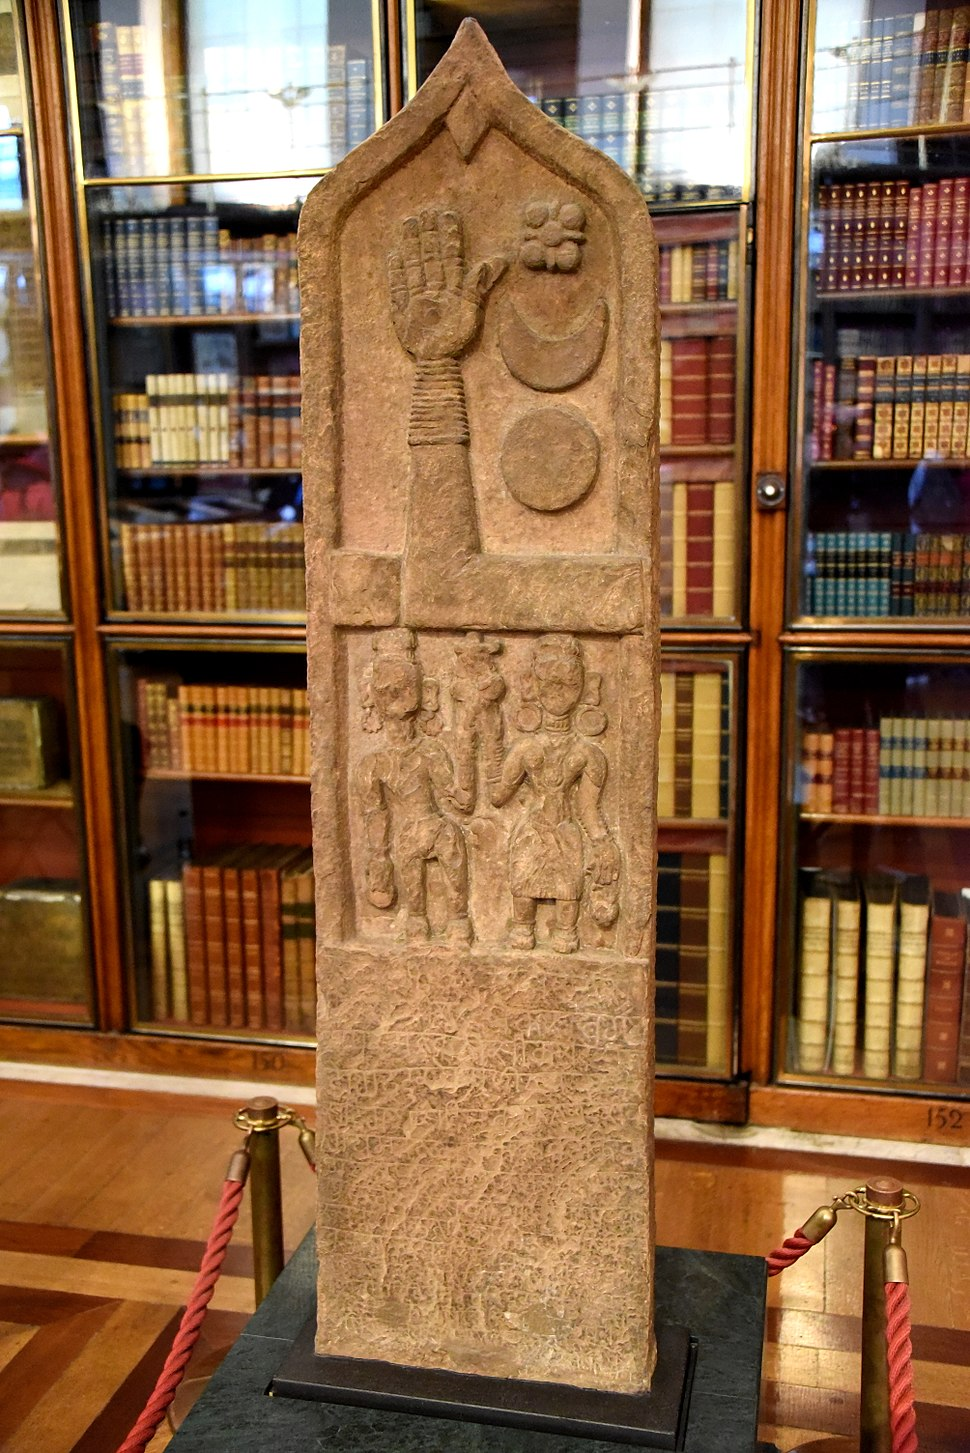 Sati Stone, memorials to Indian widows found all over India, 18th century CE, currently housed in the British Museum.jpg